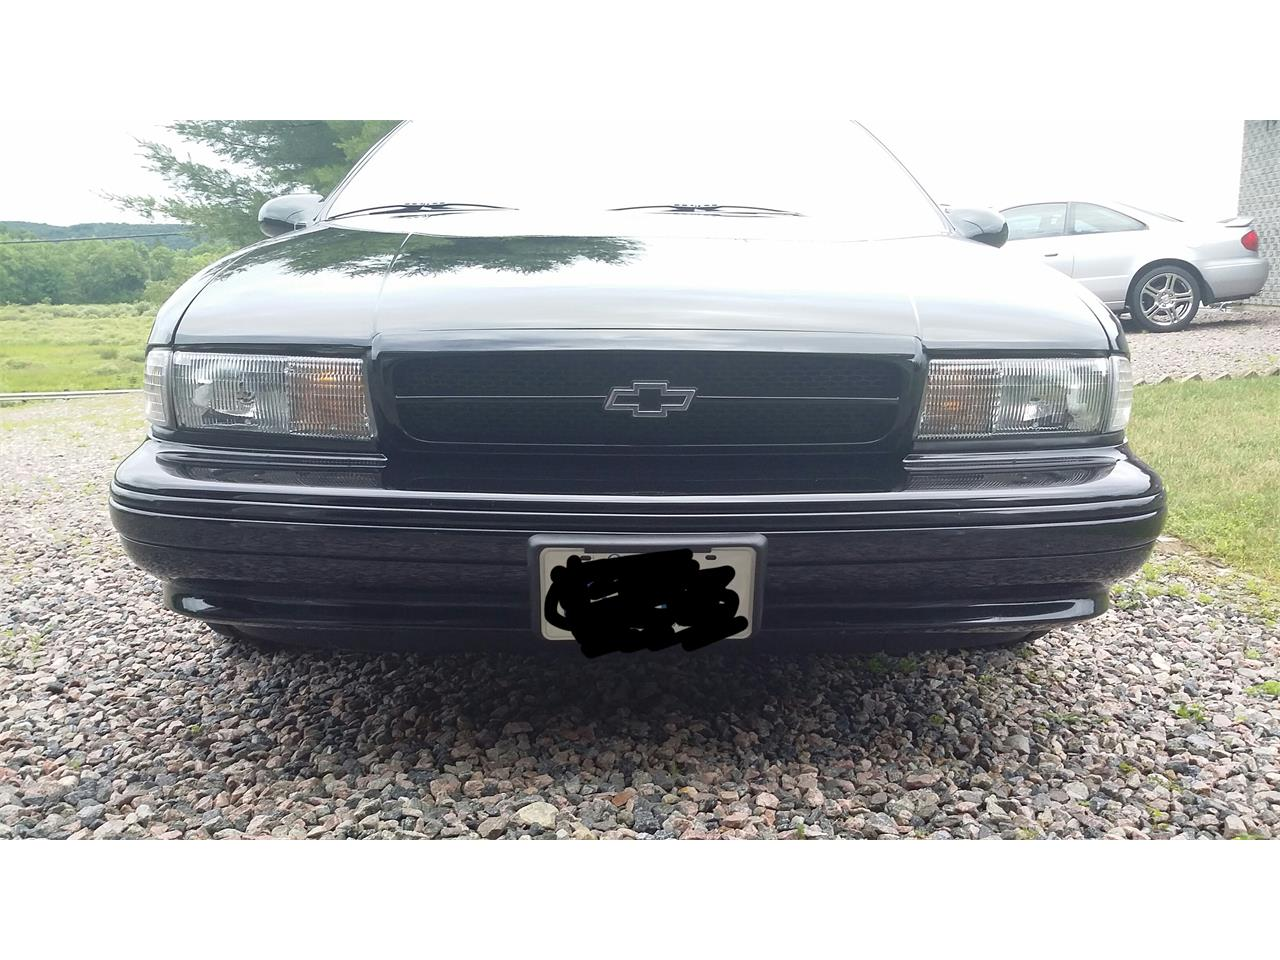 Large Picture of '96 Impala SS located in Kingston ON - Ontario - $14,250.00 - J25Y